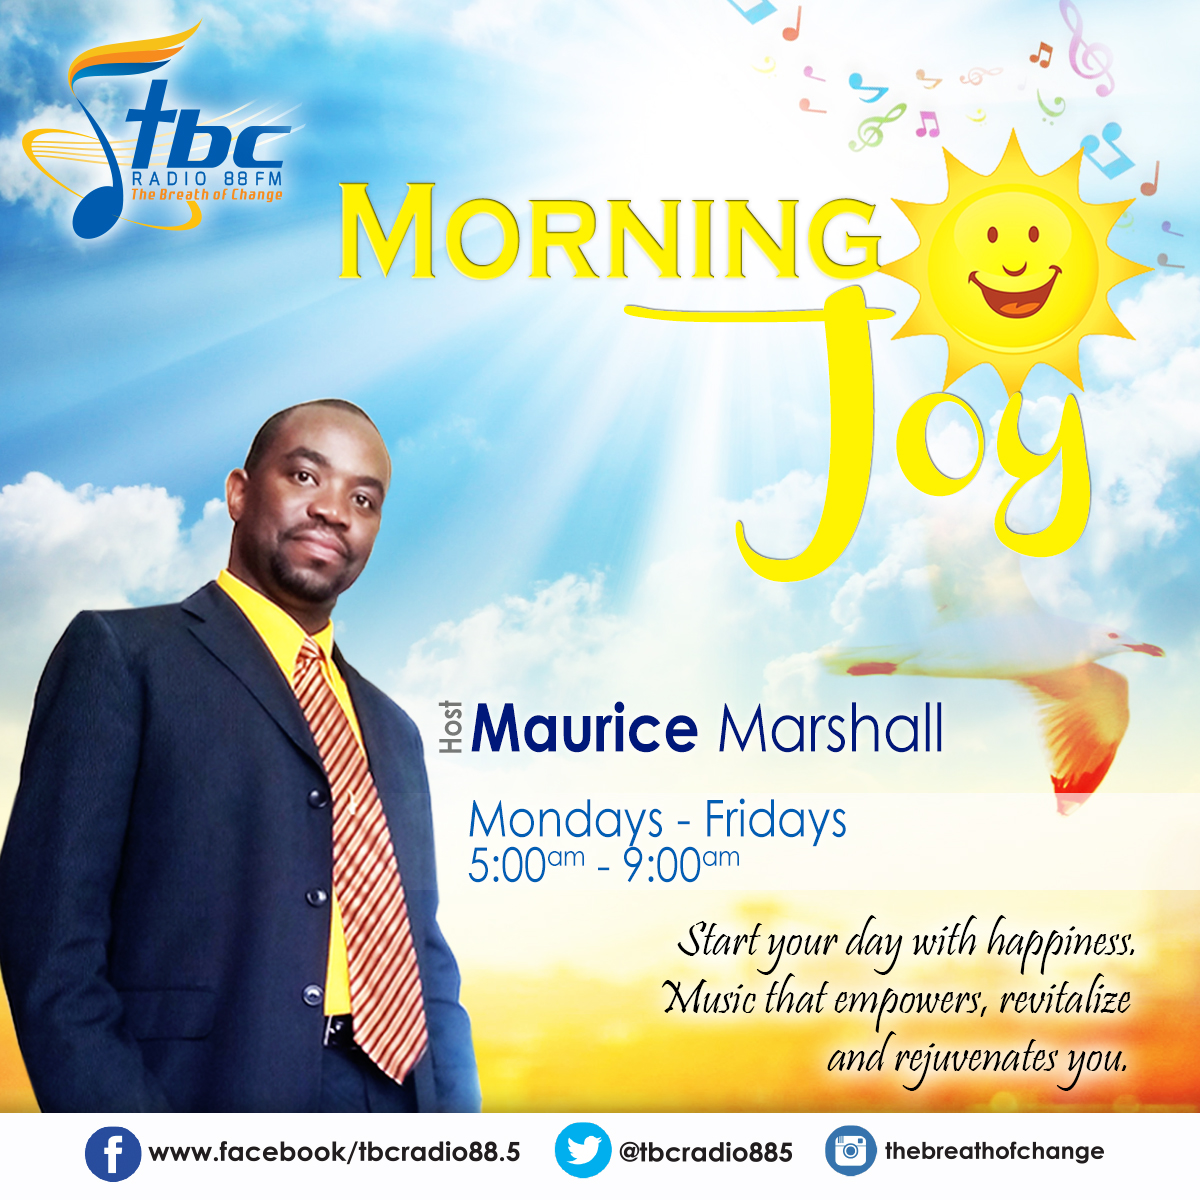 Morning Joy with Maurice Marshall